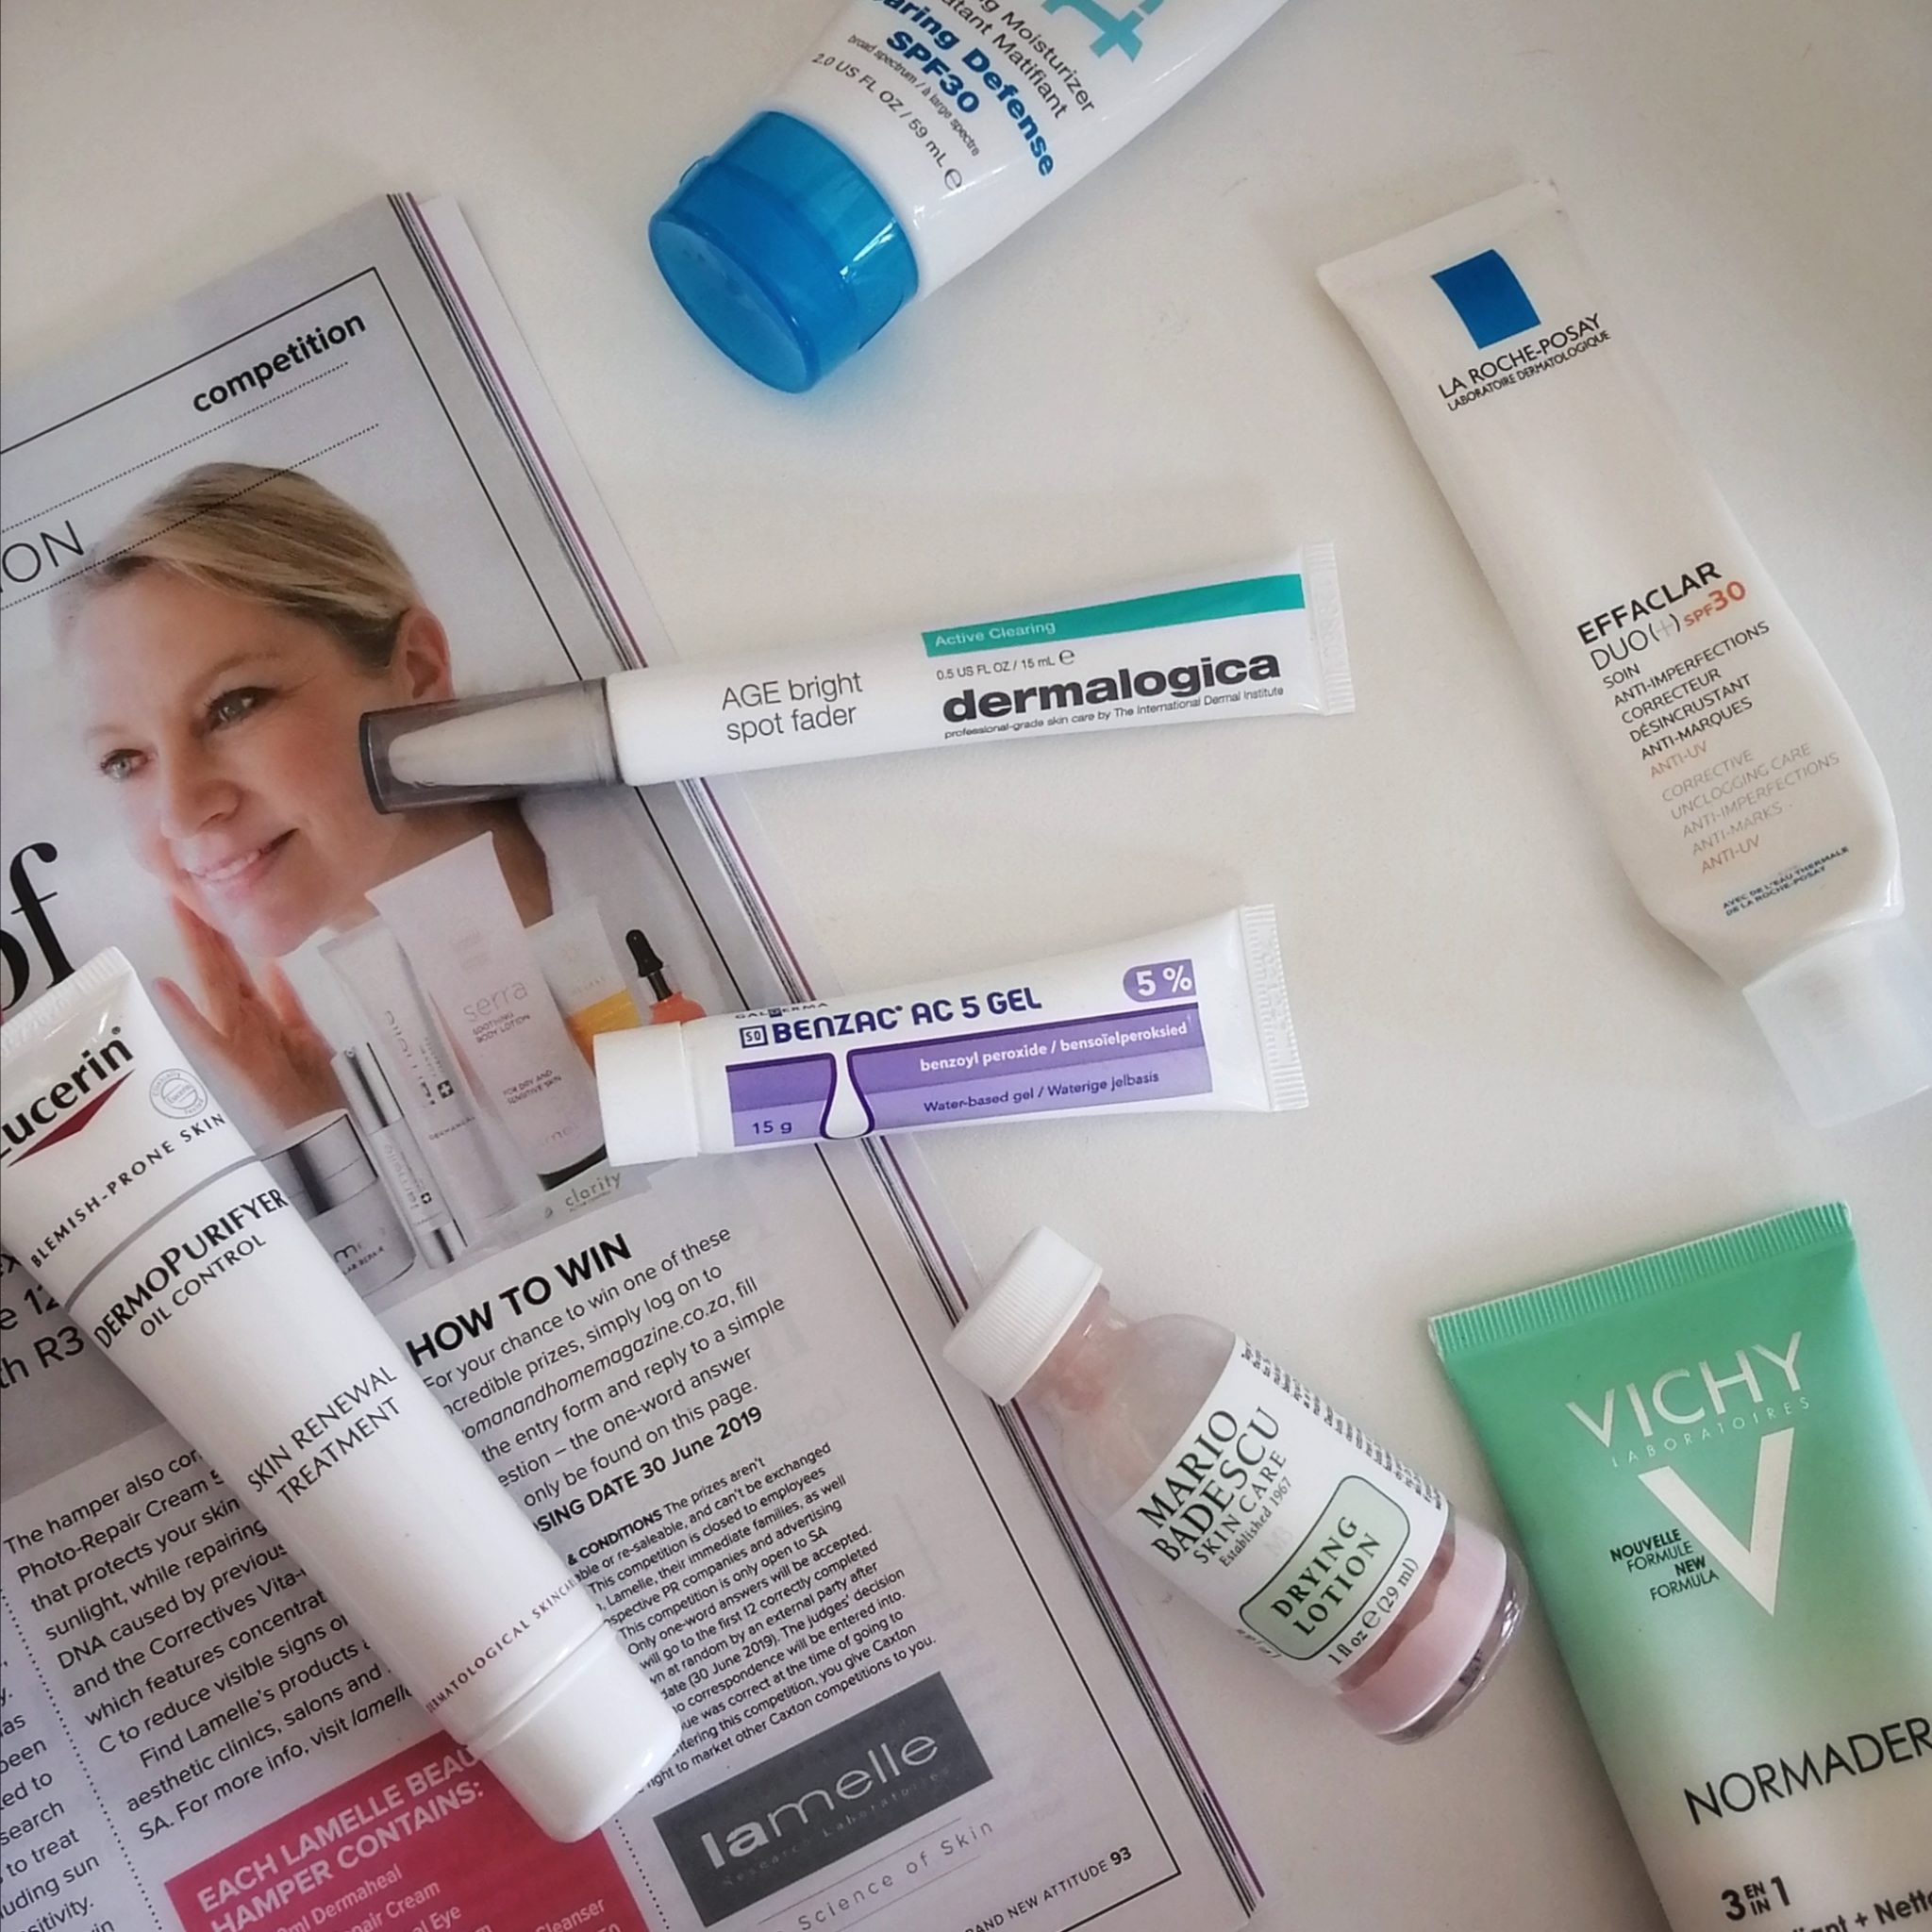 can i use doxycycline hyclate for acne